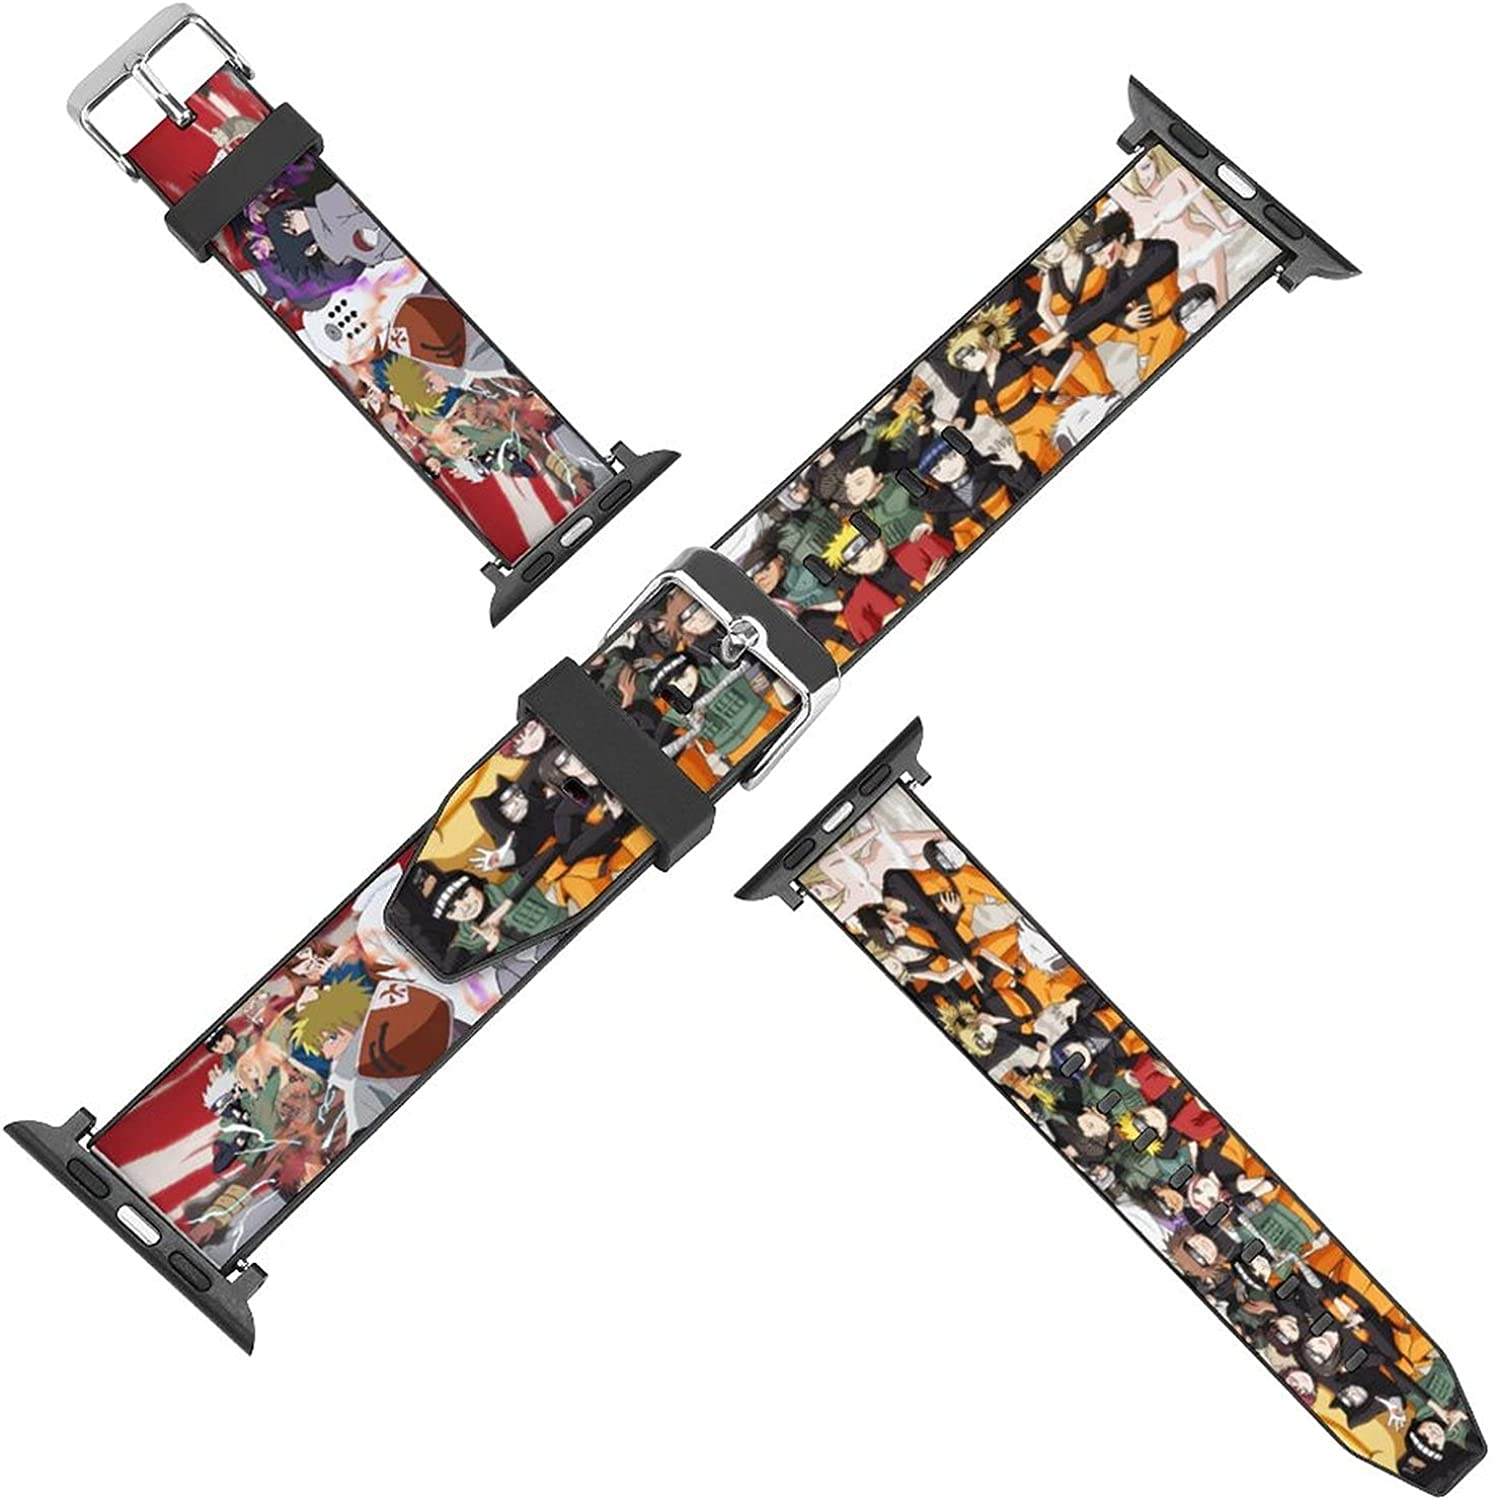 Eterfree anime N-aruto Compatible with Apple Watch Bands 38mm/40mm,42mm/44mm PU Sport Band for Women Men,Strap Compatible with iWatch series 5 4 3 2 1